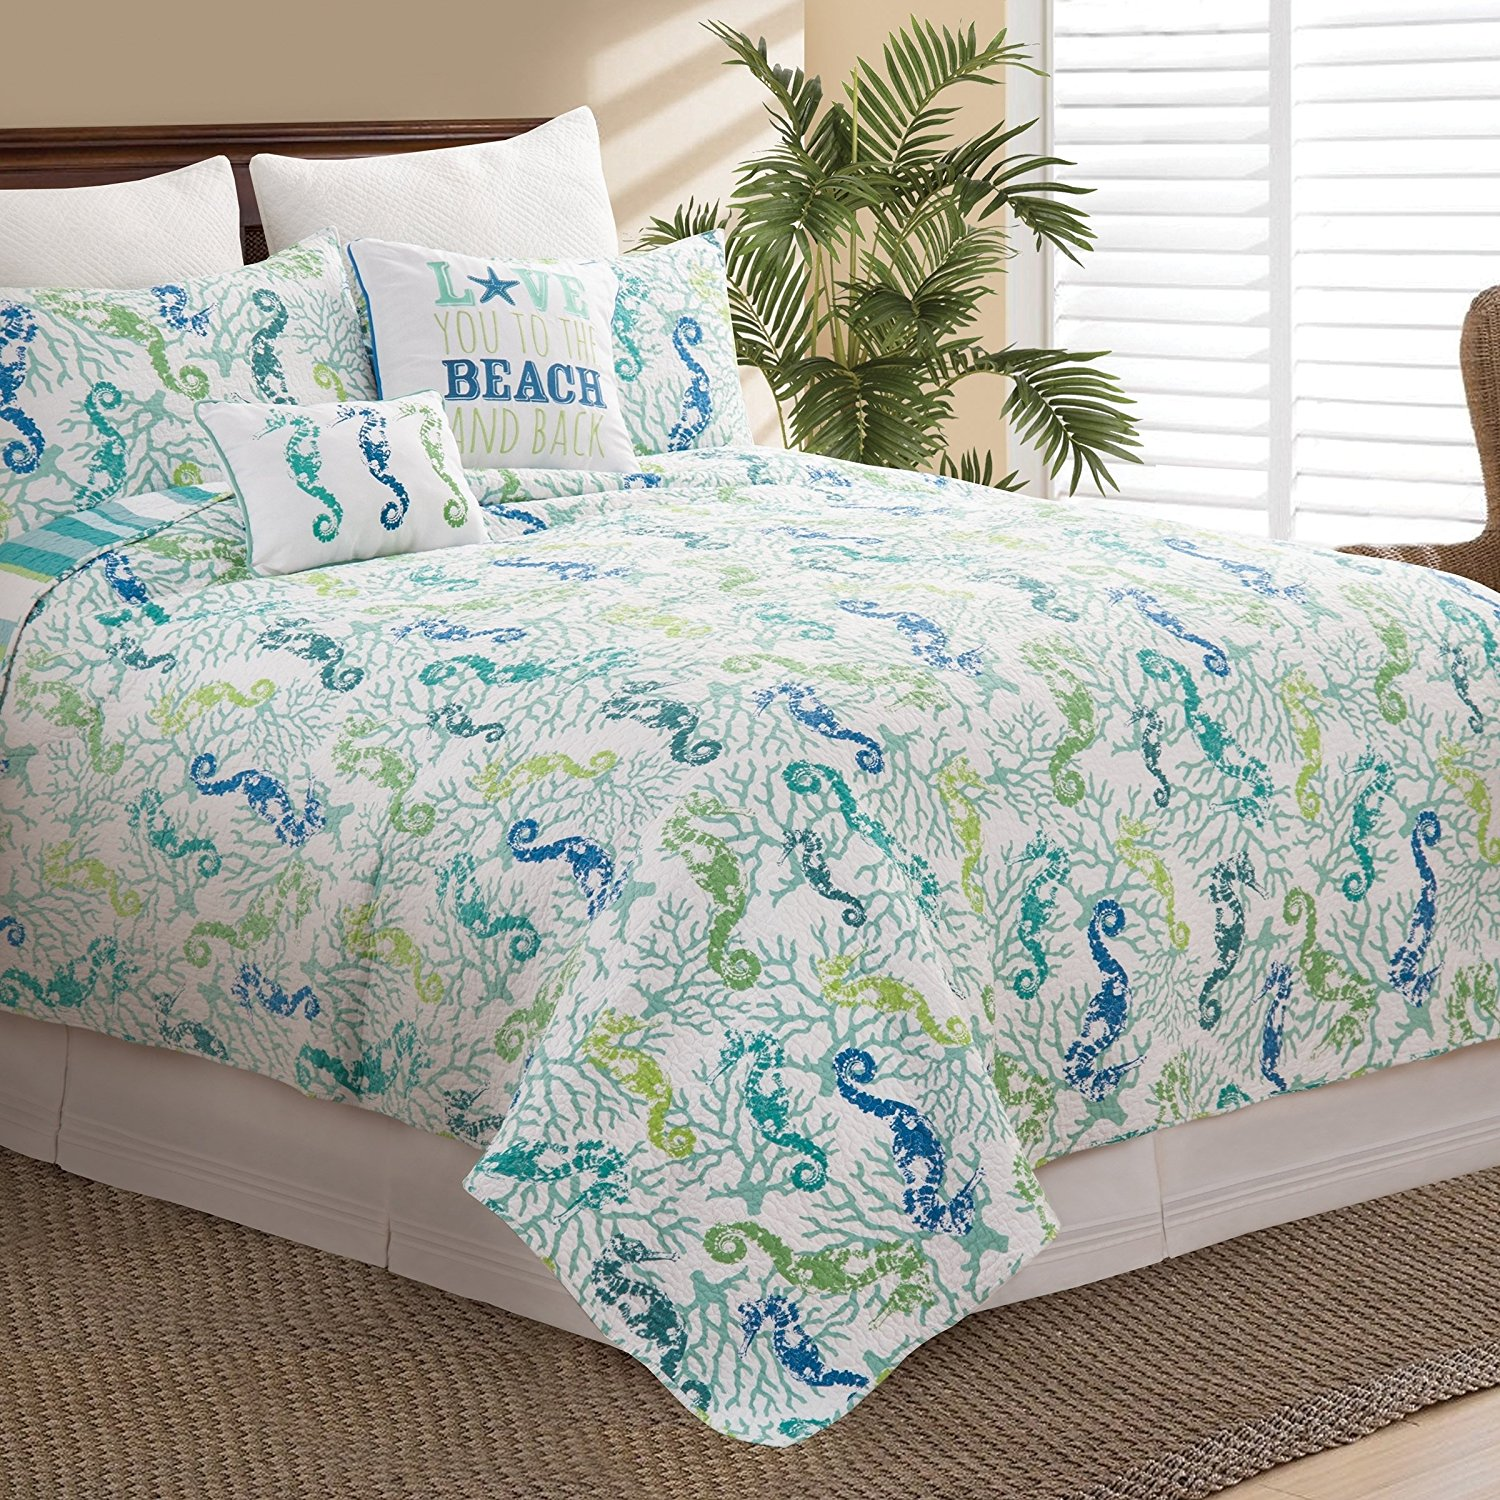 3 Piece Aqua Blue Green Coastal Pattern Quilt King Set, Elegant All Over Ocean Coral Floral Design Background, Deep Sea Animal Seahorses Print, Reversible Bedding, Abstract Bright Colors, Cotton